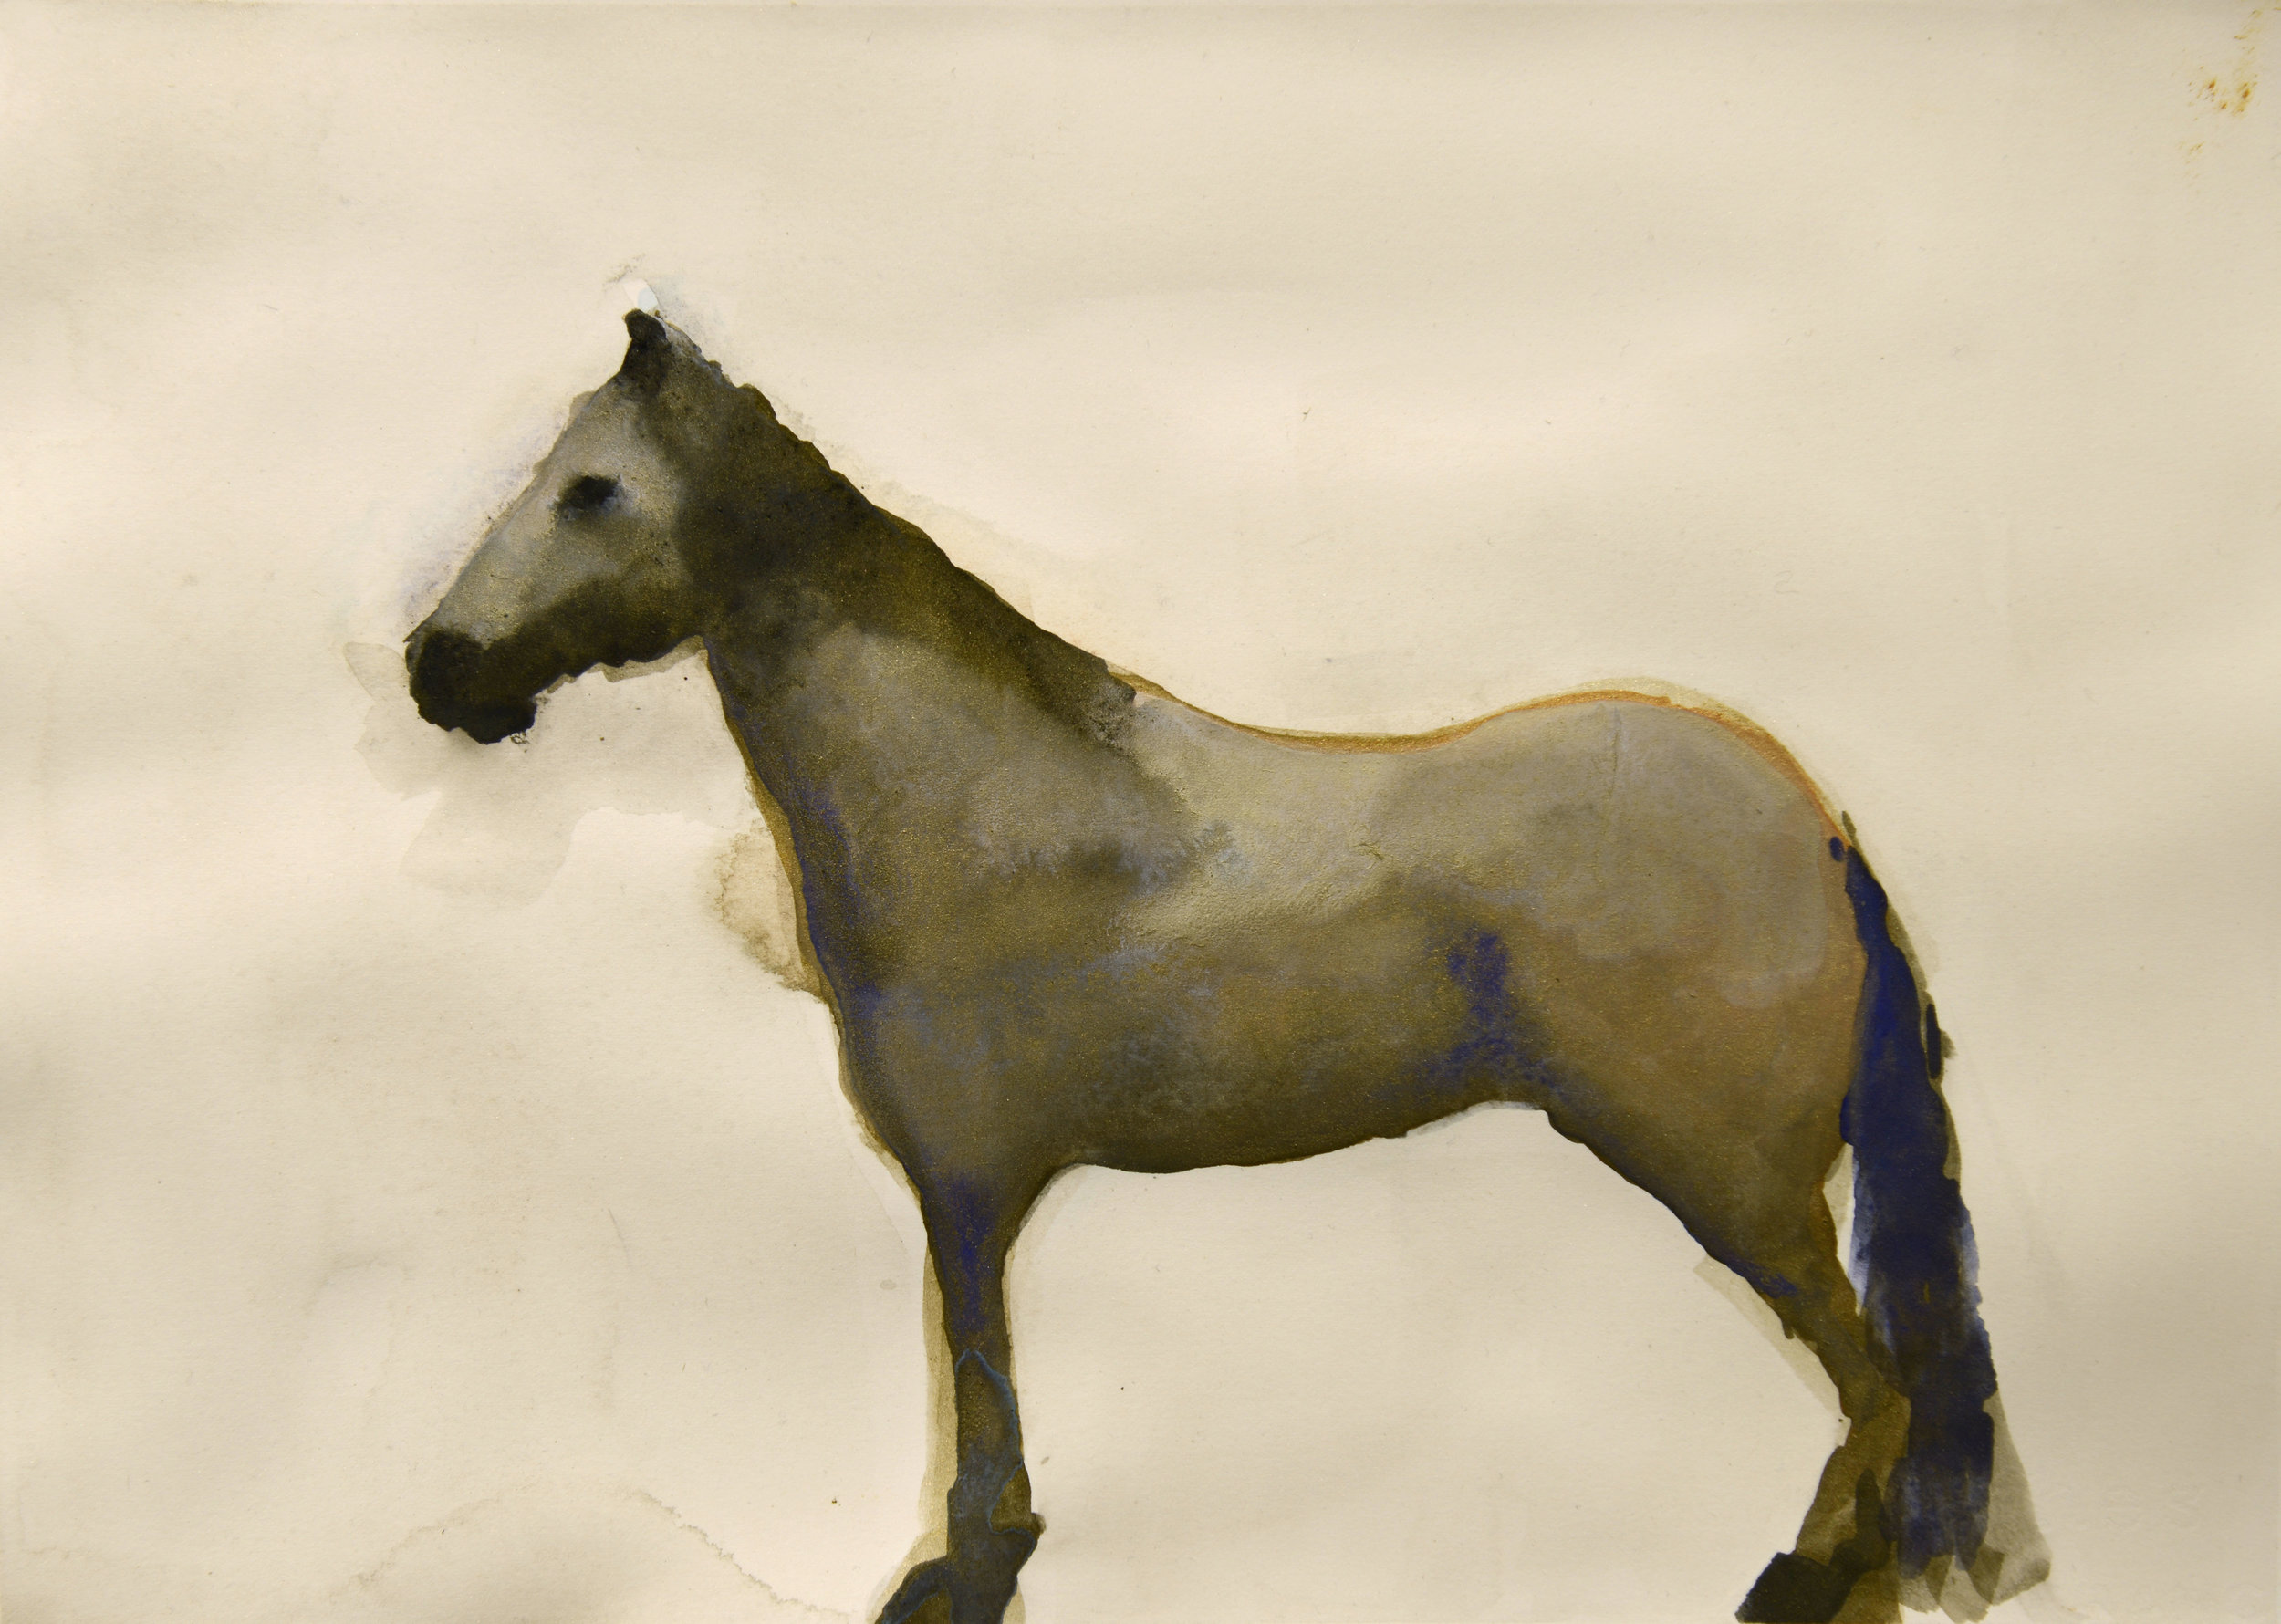 Grey Mare_9.5x13.25_mm on paper.jpg